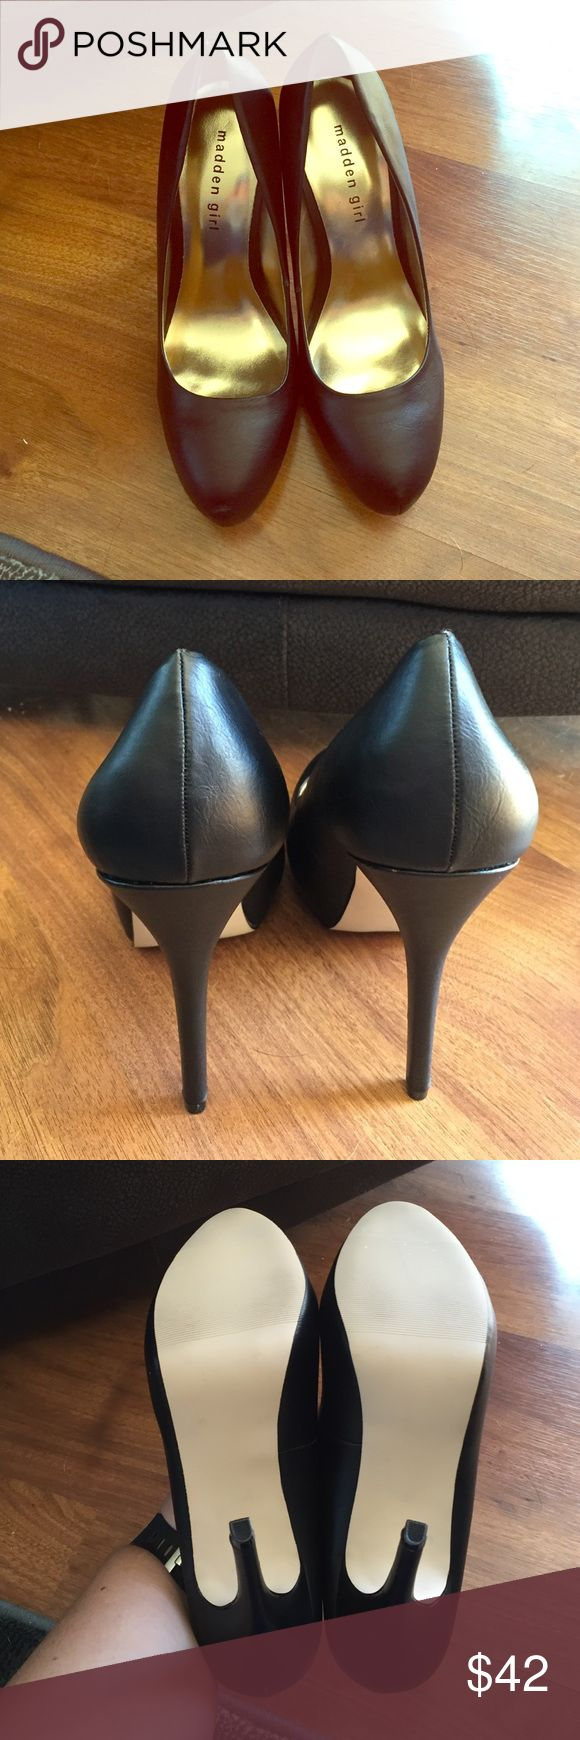 """NWOT Black Leather Heels NWOT Madden Girl Black Leather Heels. Size 9. Excellent condition. Never worn. About 4.5"""" heels. Classic leather heeled shoes, perfect with any outfit! 💜 Madden Girl Shoes Heels"""